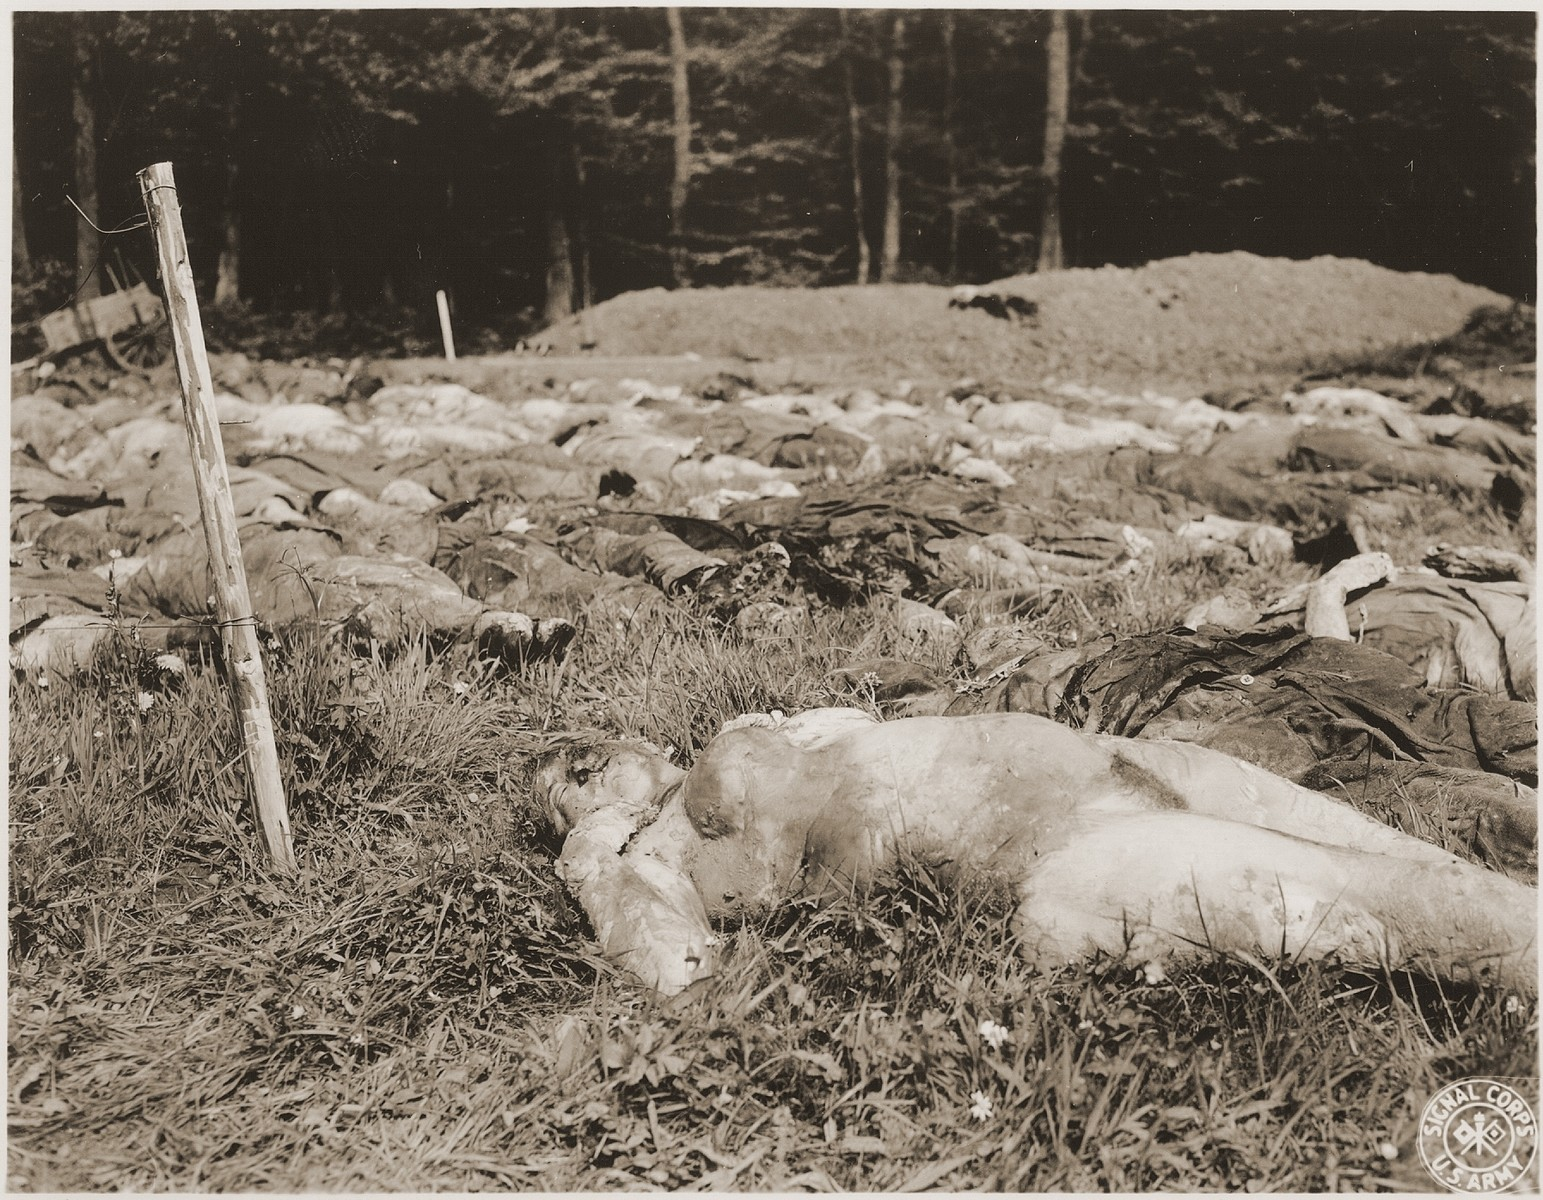 "The corpses of female prisoners exhumed from a mass grave near Hirzenhain lie out in a field.  The original caption reads, ""Jewish women died from burtality and malnutrition lying in the field awaiting to be buried by the civilians at the Hergenhein concetration camp, Germany."" [sic]  According to the Signal Corps caption, the photo was taken on May 6, 1945."